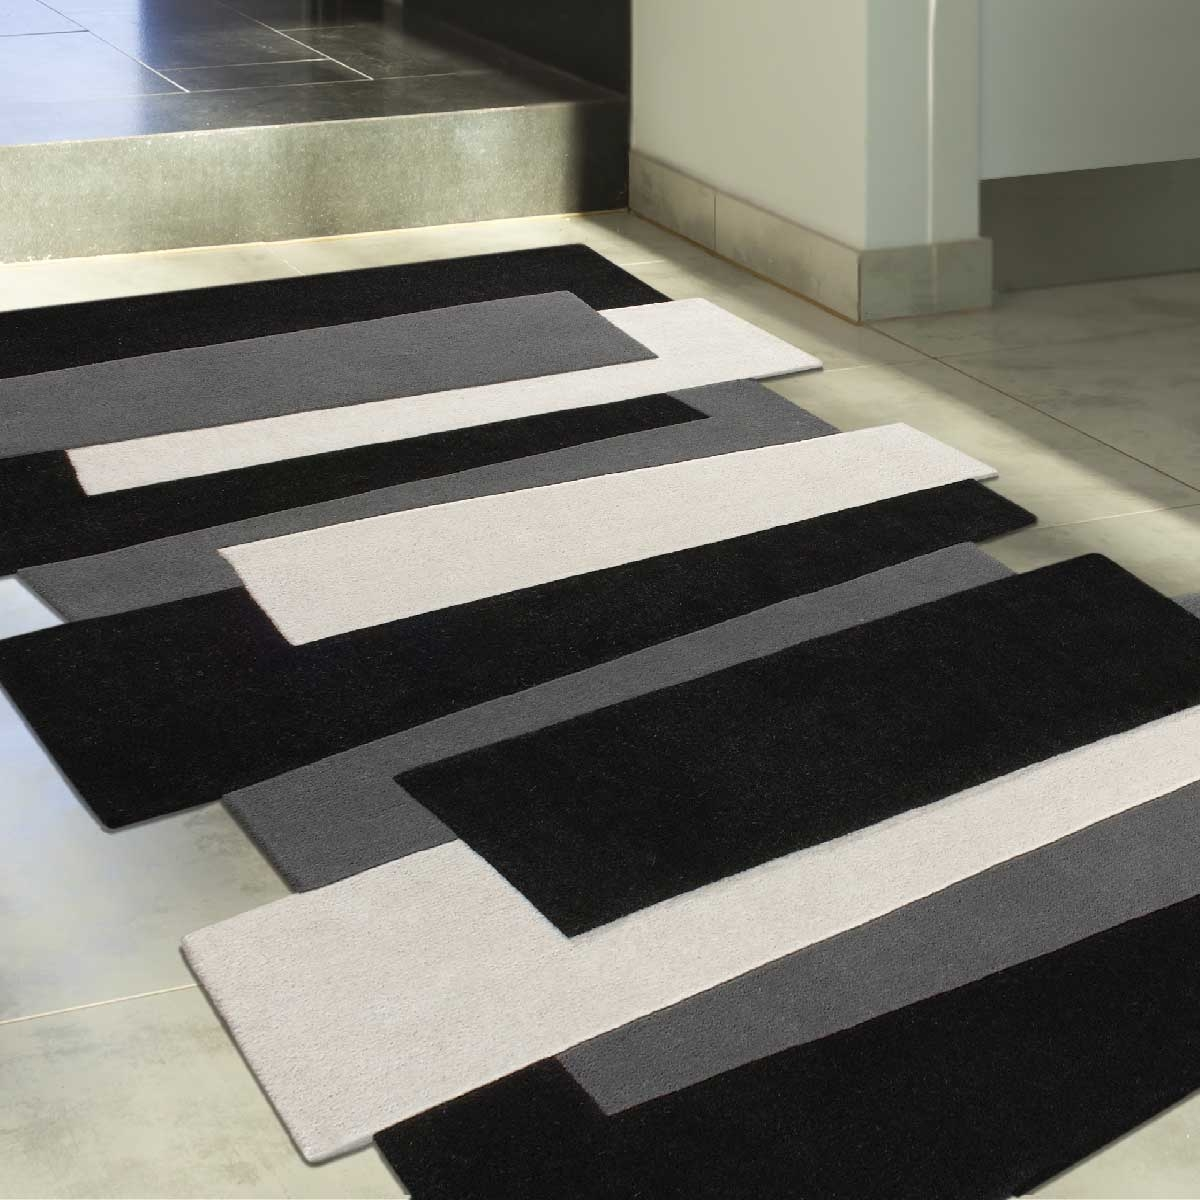 tapis de cuisine rouge et gris awesome with tapis de cuisine rouge et gris cool elegant tapis. Black Bedroom Furniture Sets. Home Design Ideas